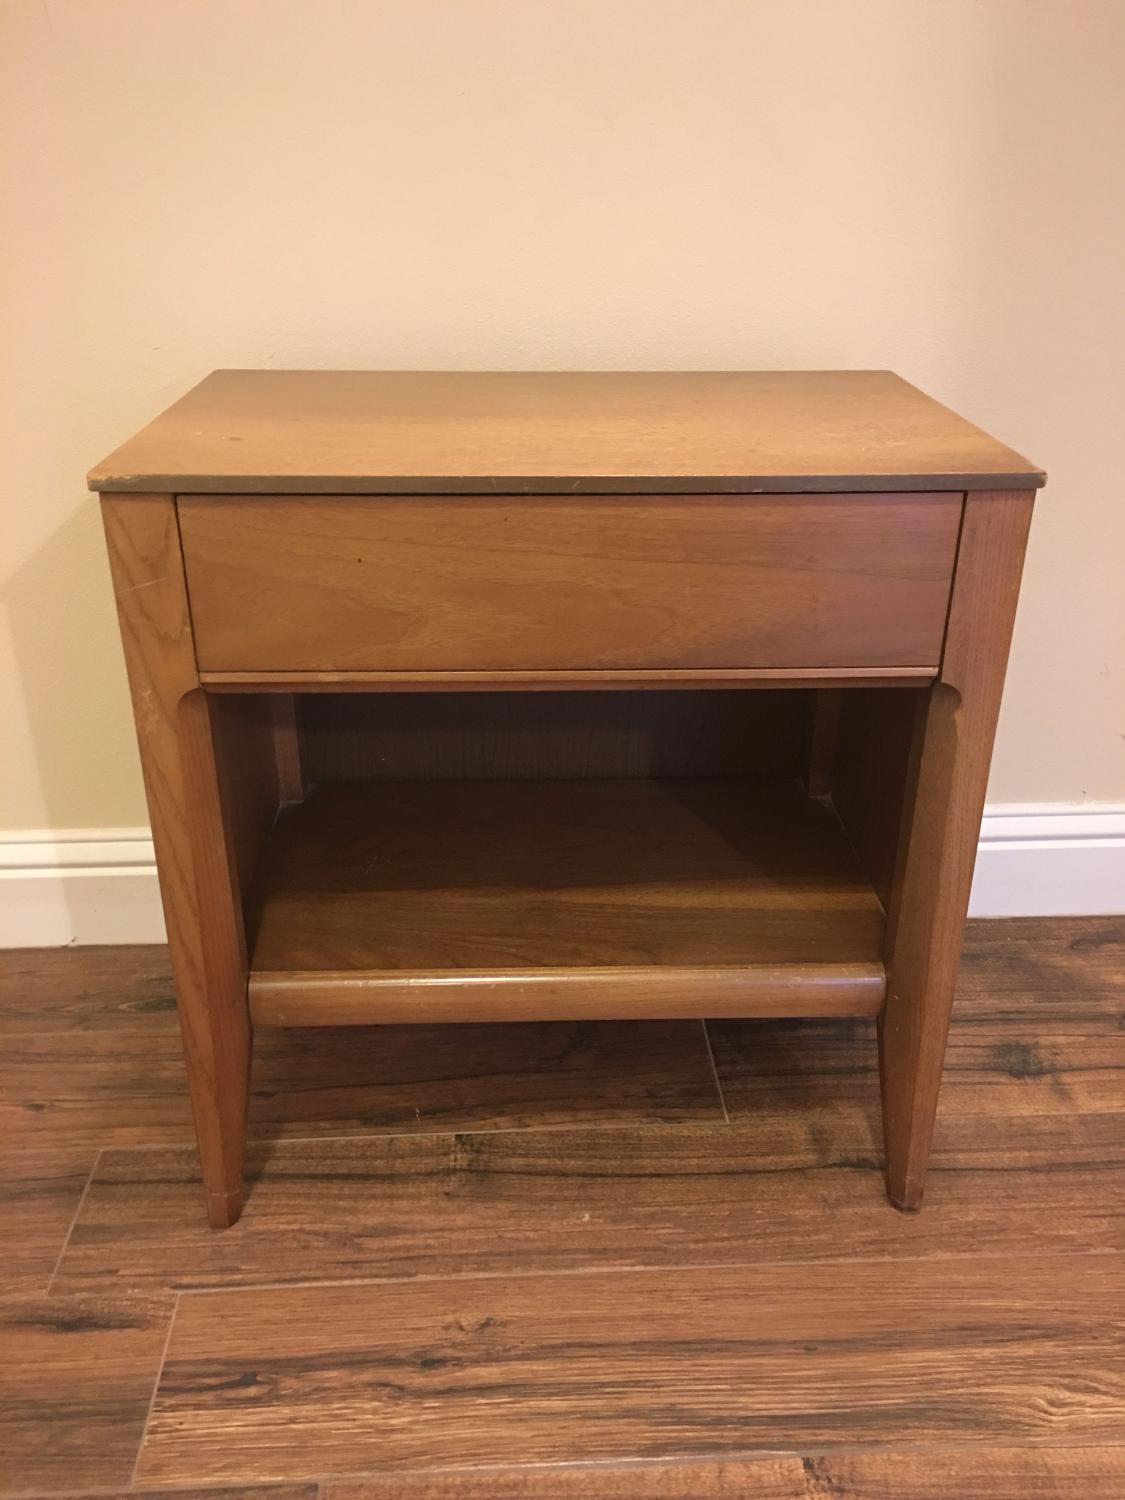 Best Mid Century Vintage Nightstand For Sale In Baton Rouge Louisiana For 2018